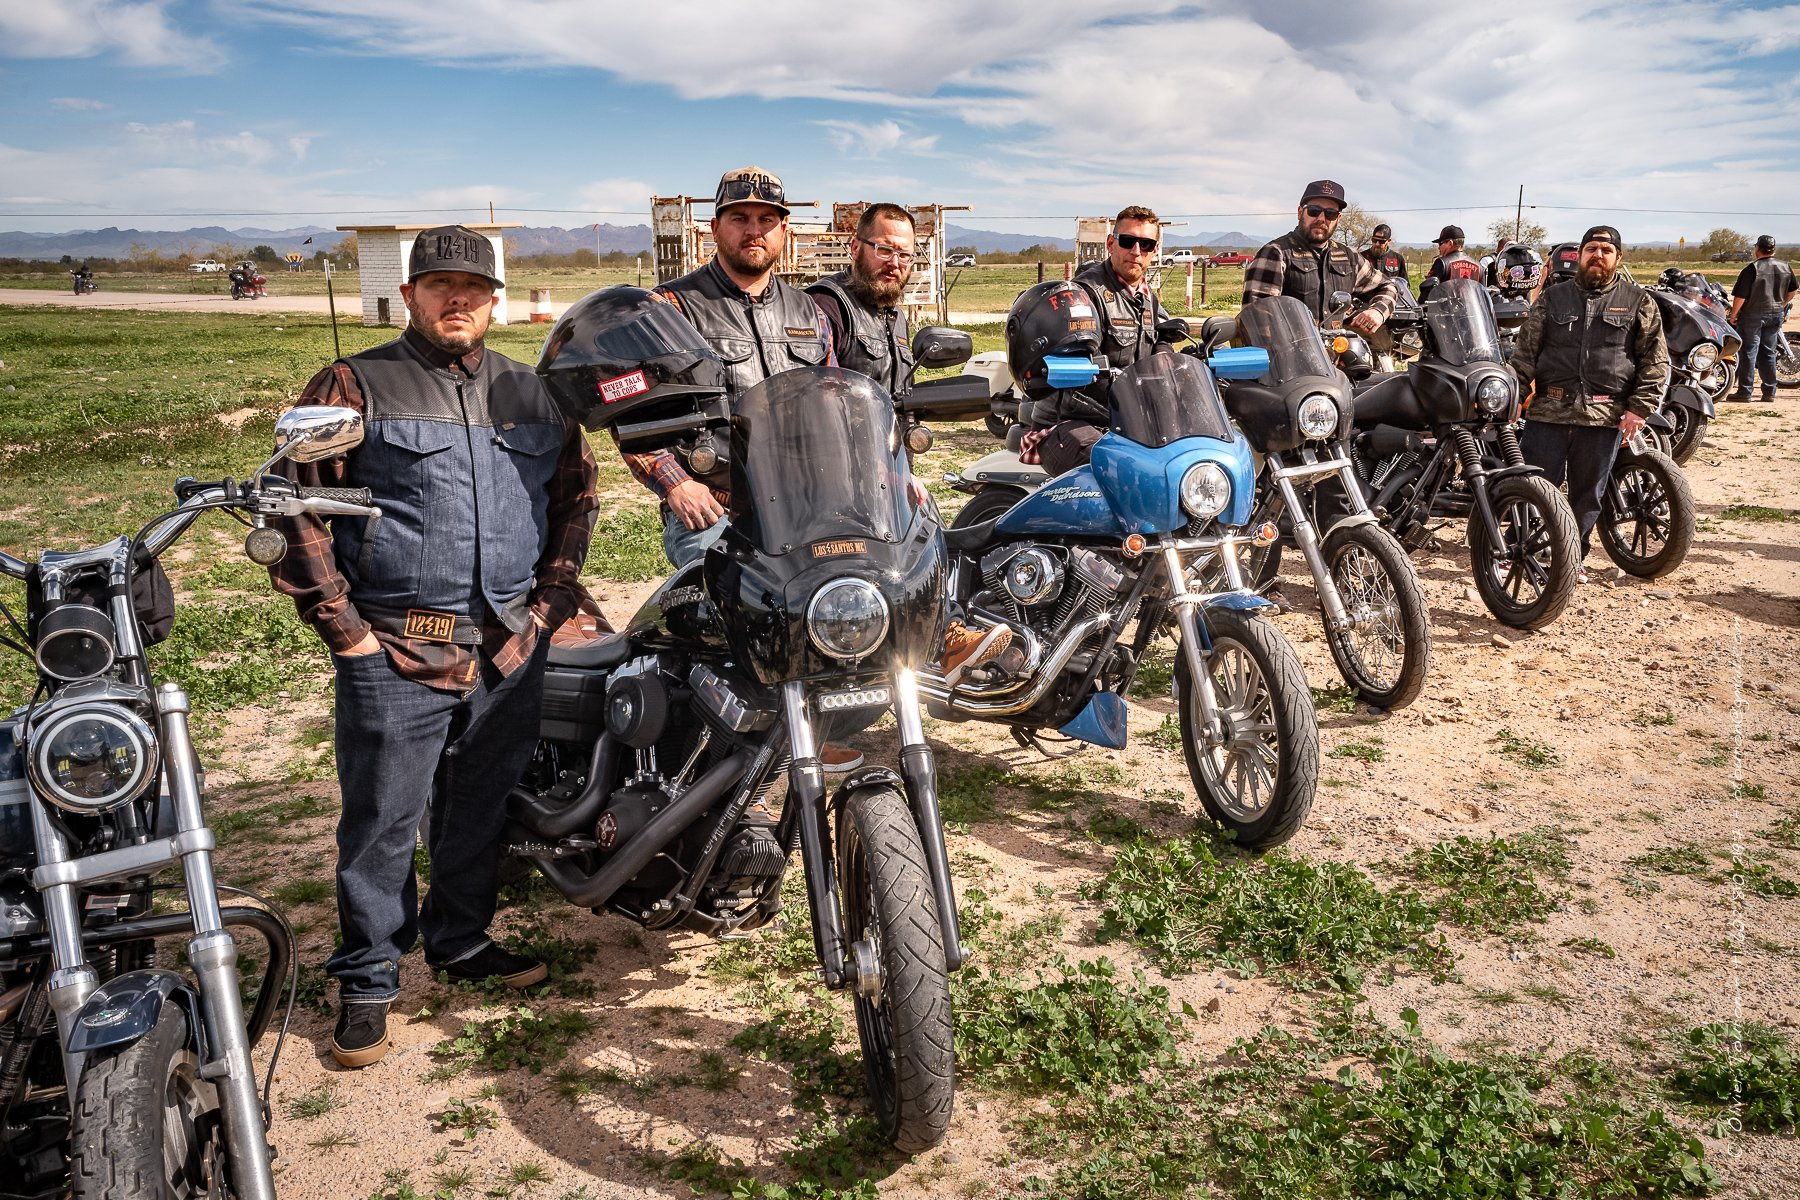 09 février 2020. Arizona. 37th Prison Run organised by the Hell's Angels MC. from Phoenix to Florence. This year the parade has not been allowed by the law enforcement. // © Olivier Touron / Divergence